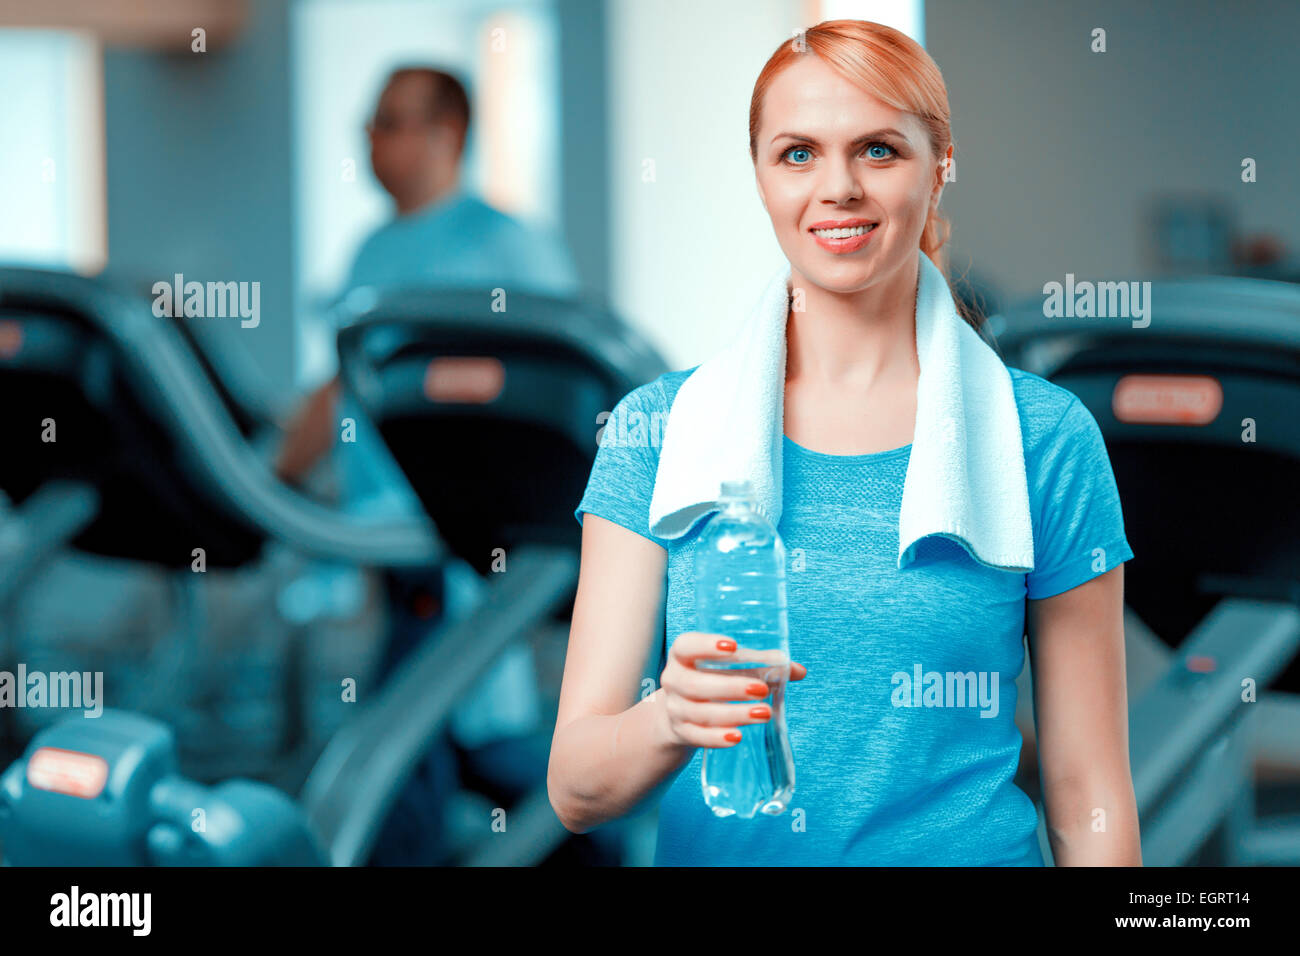 Attractive mature woman at sports club - Stock Image